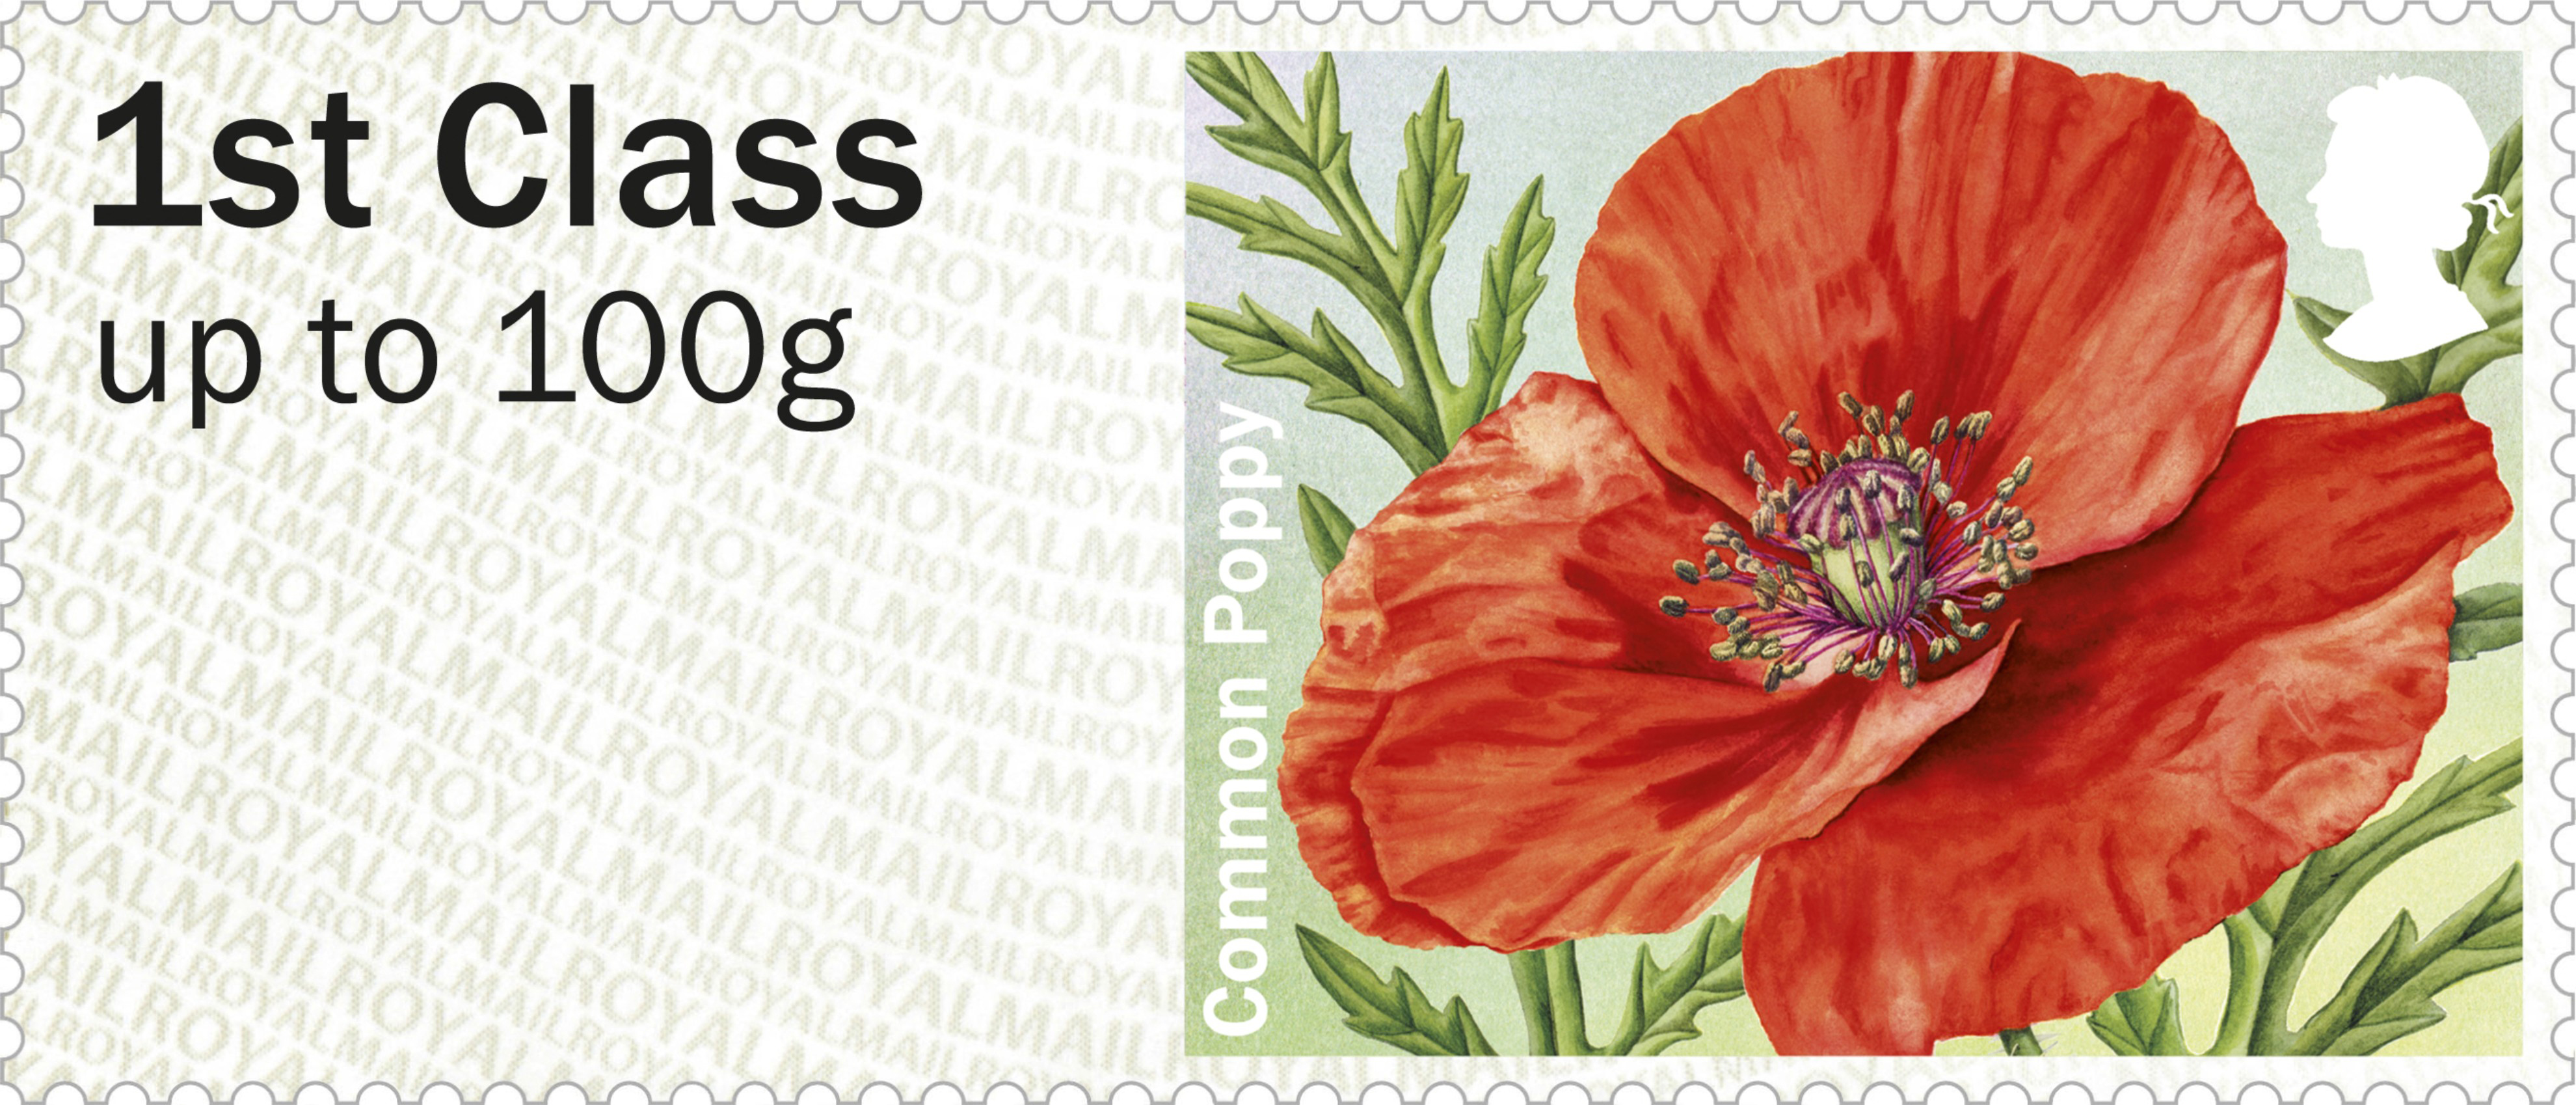 Post Go Symbolic Flowers British Flora 2 2014 Collect Gb Stamps